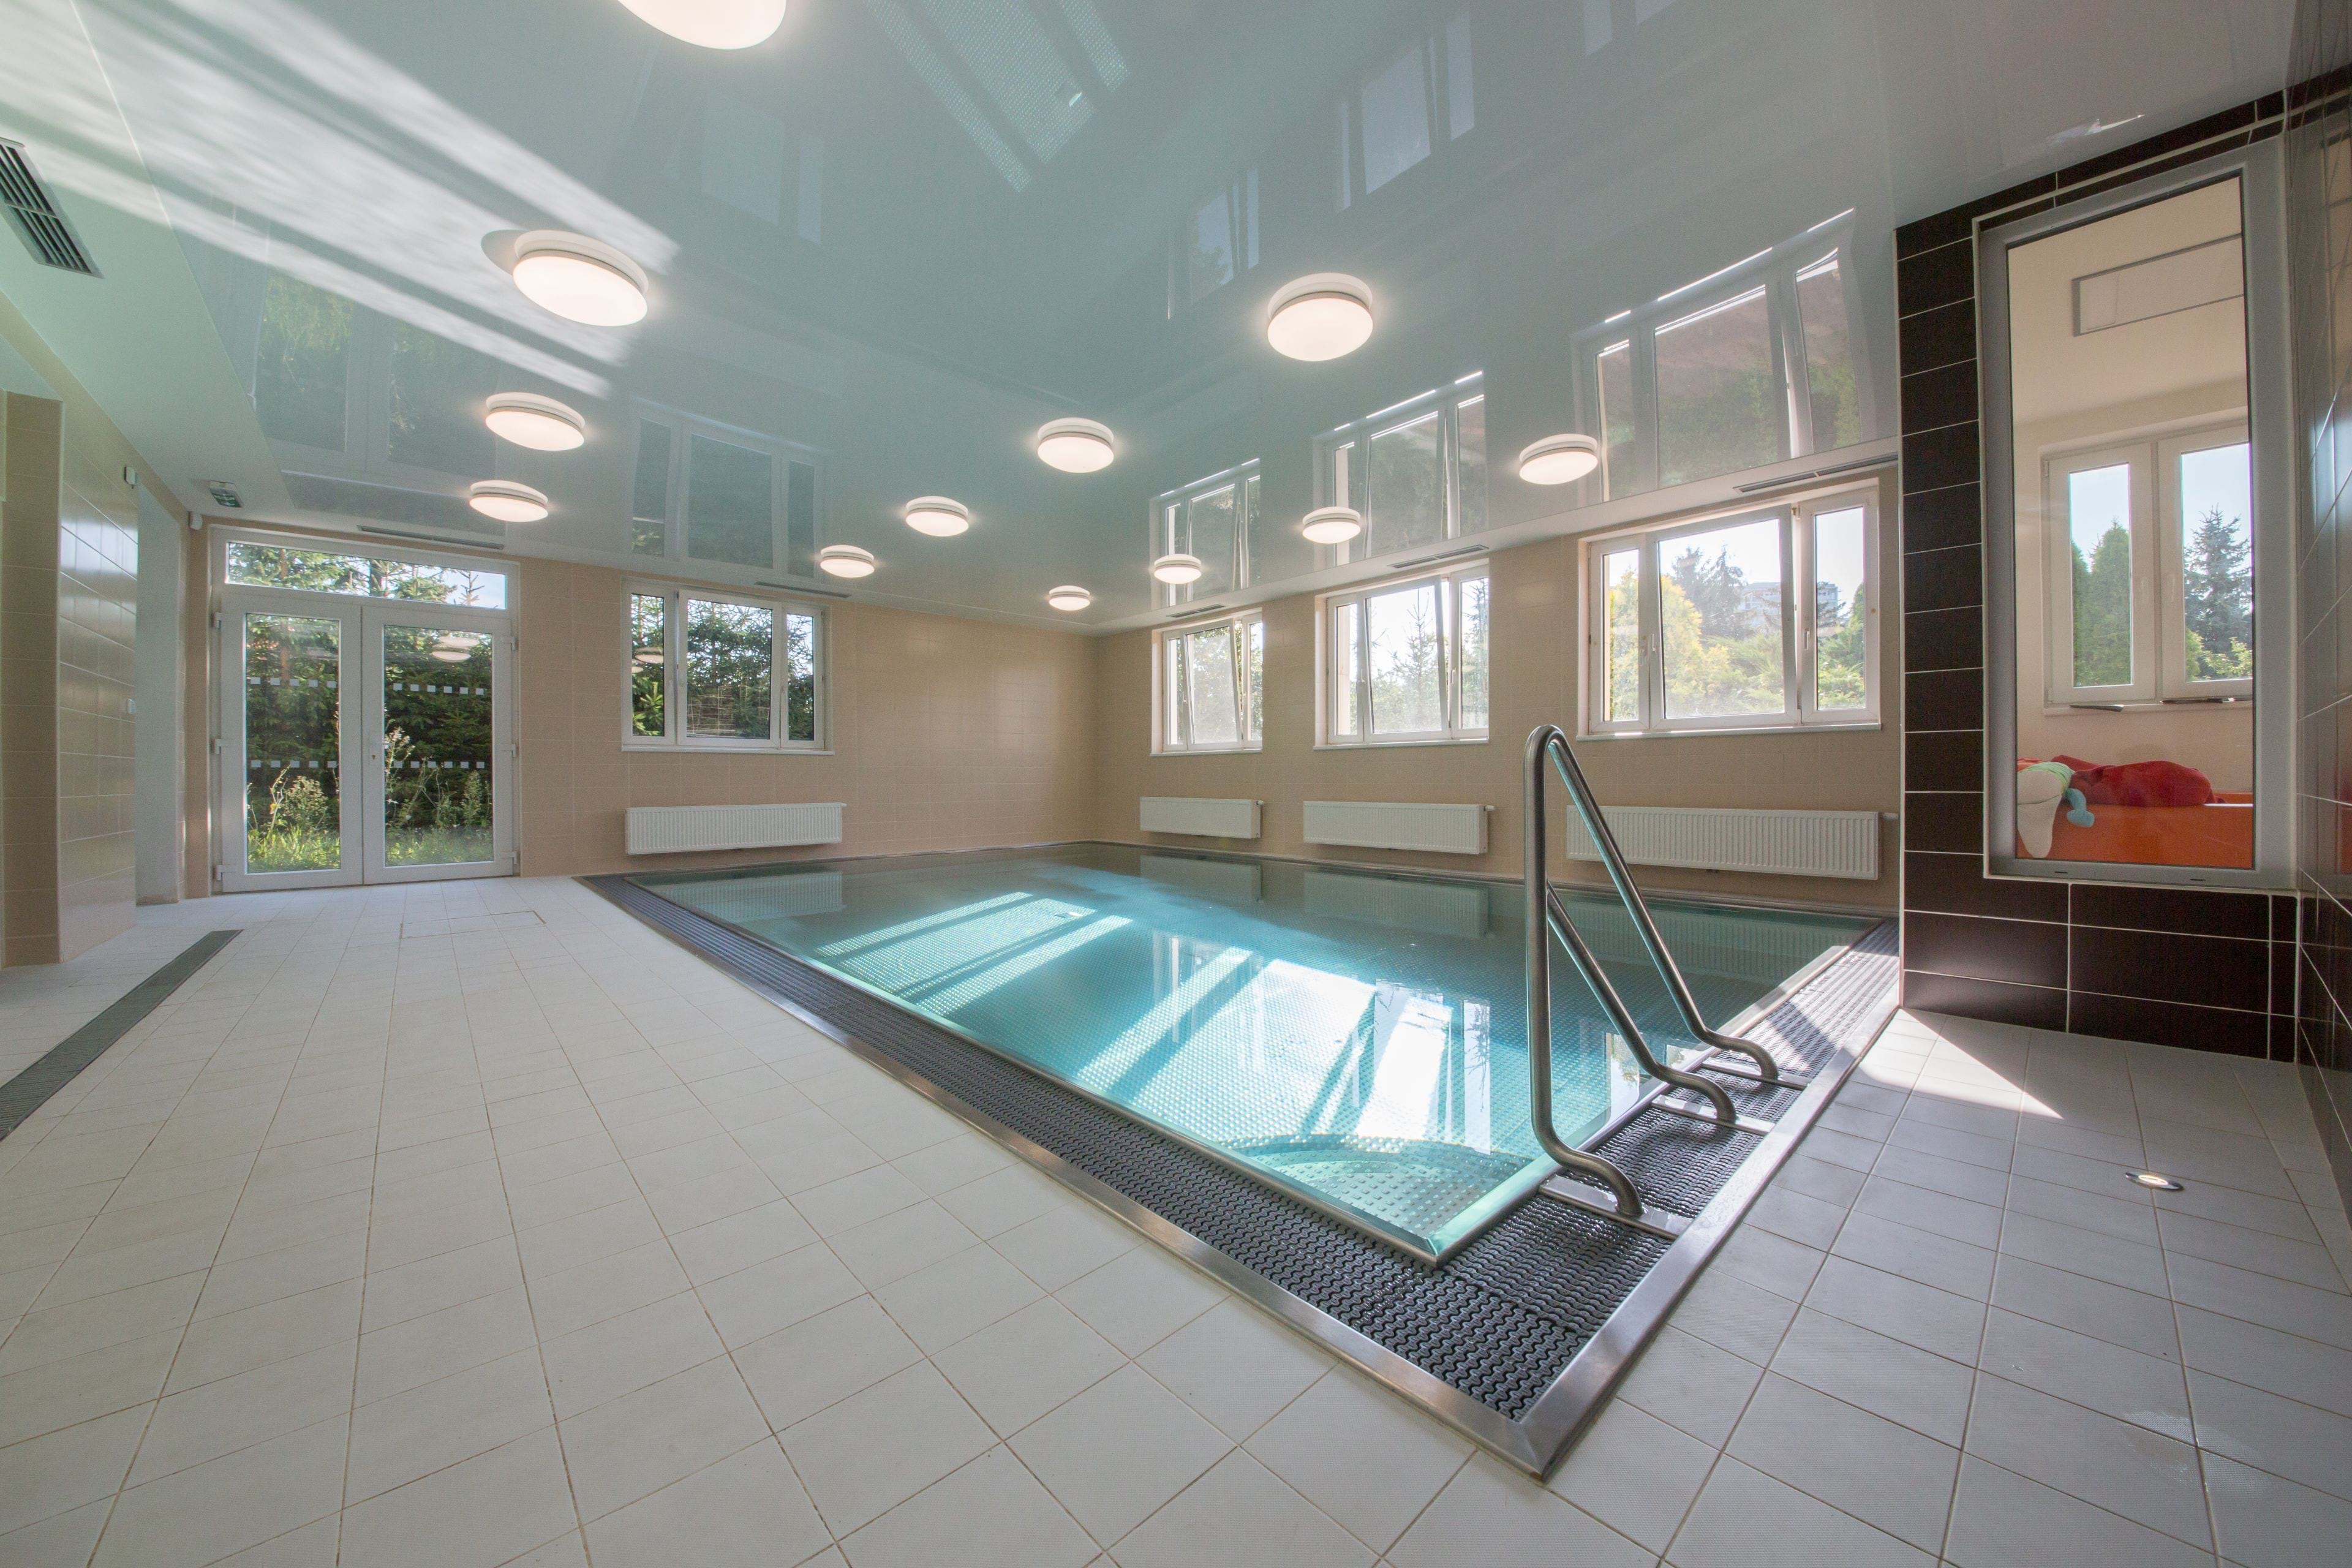 Stainless-Steel Pool in the Centre for Psychosomatic Medicine